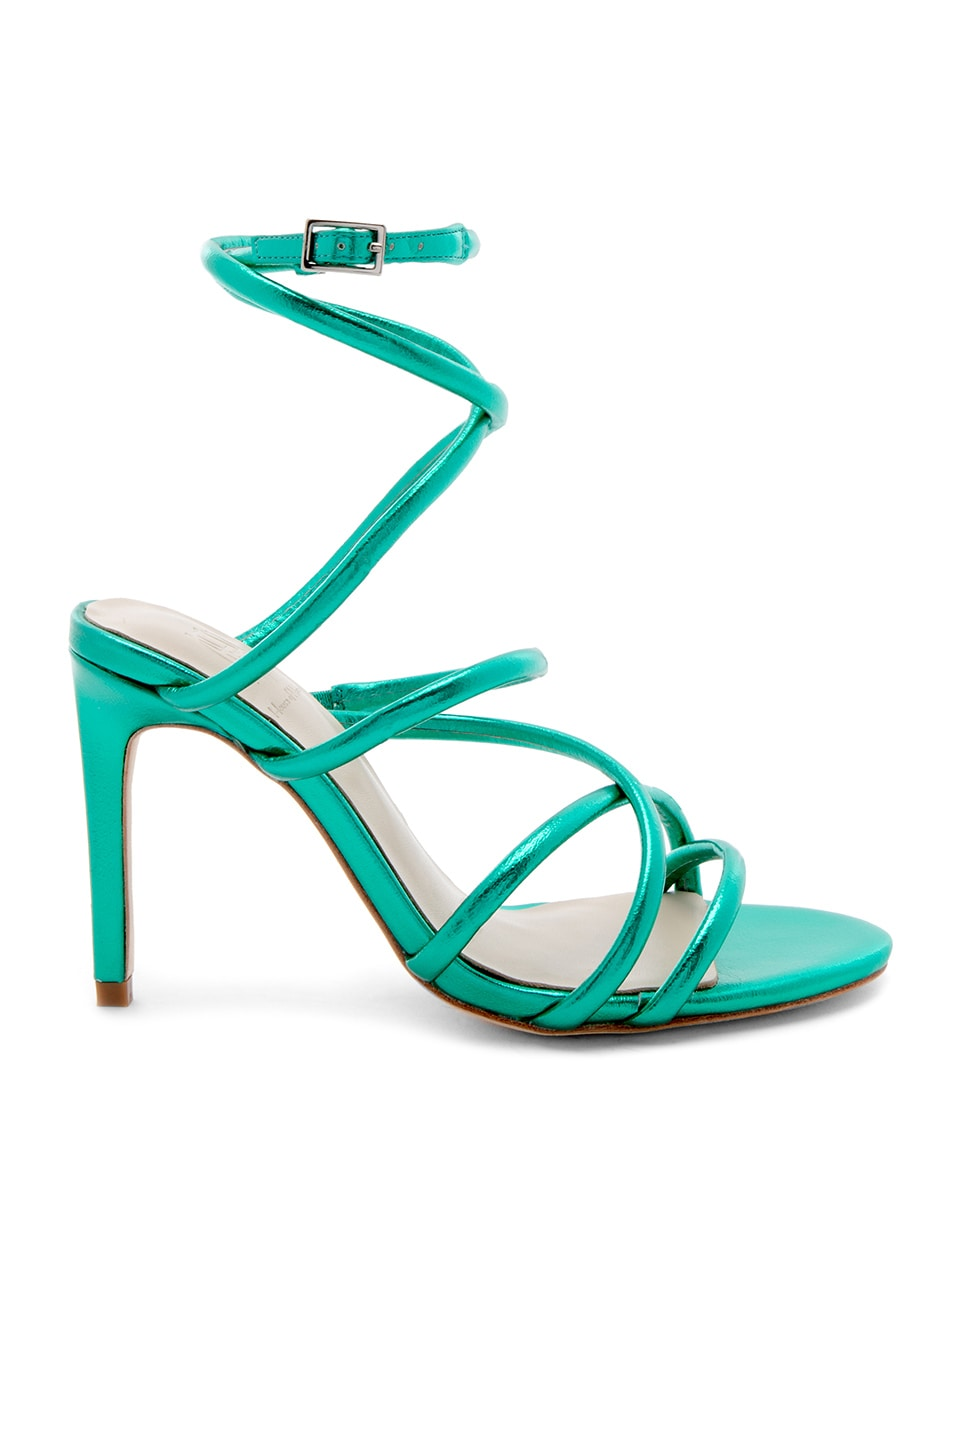 RAYE x House Of Harlow 1960 Vigo Heel in Green